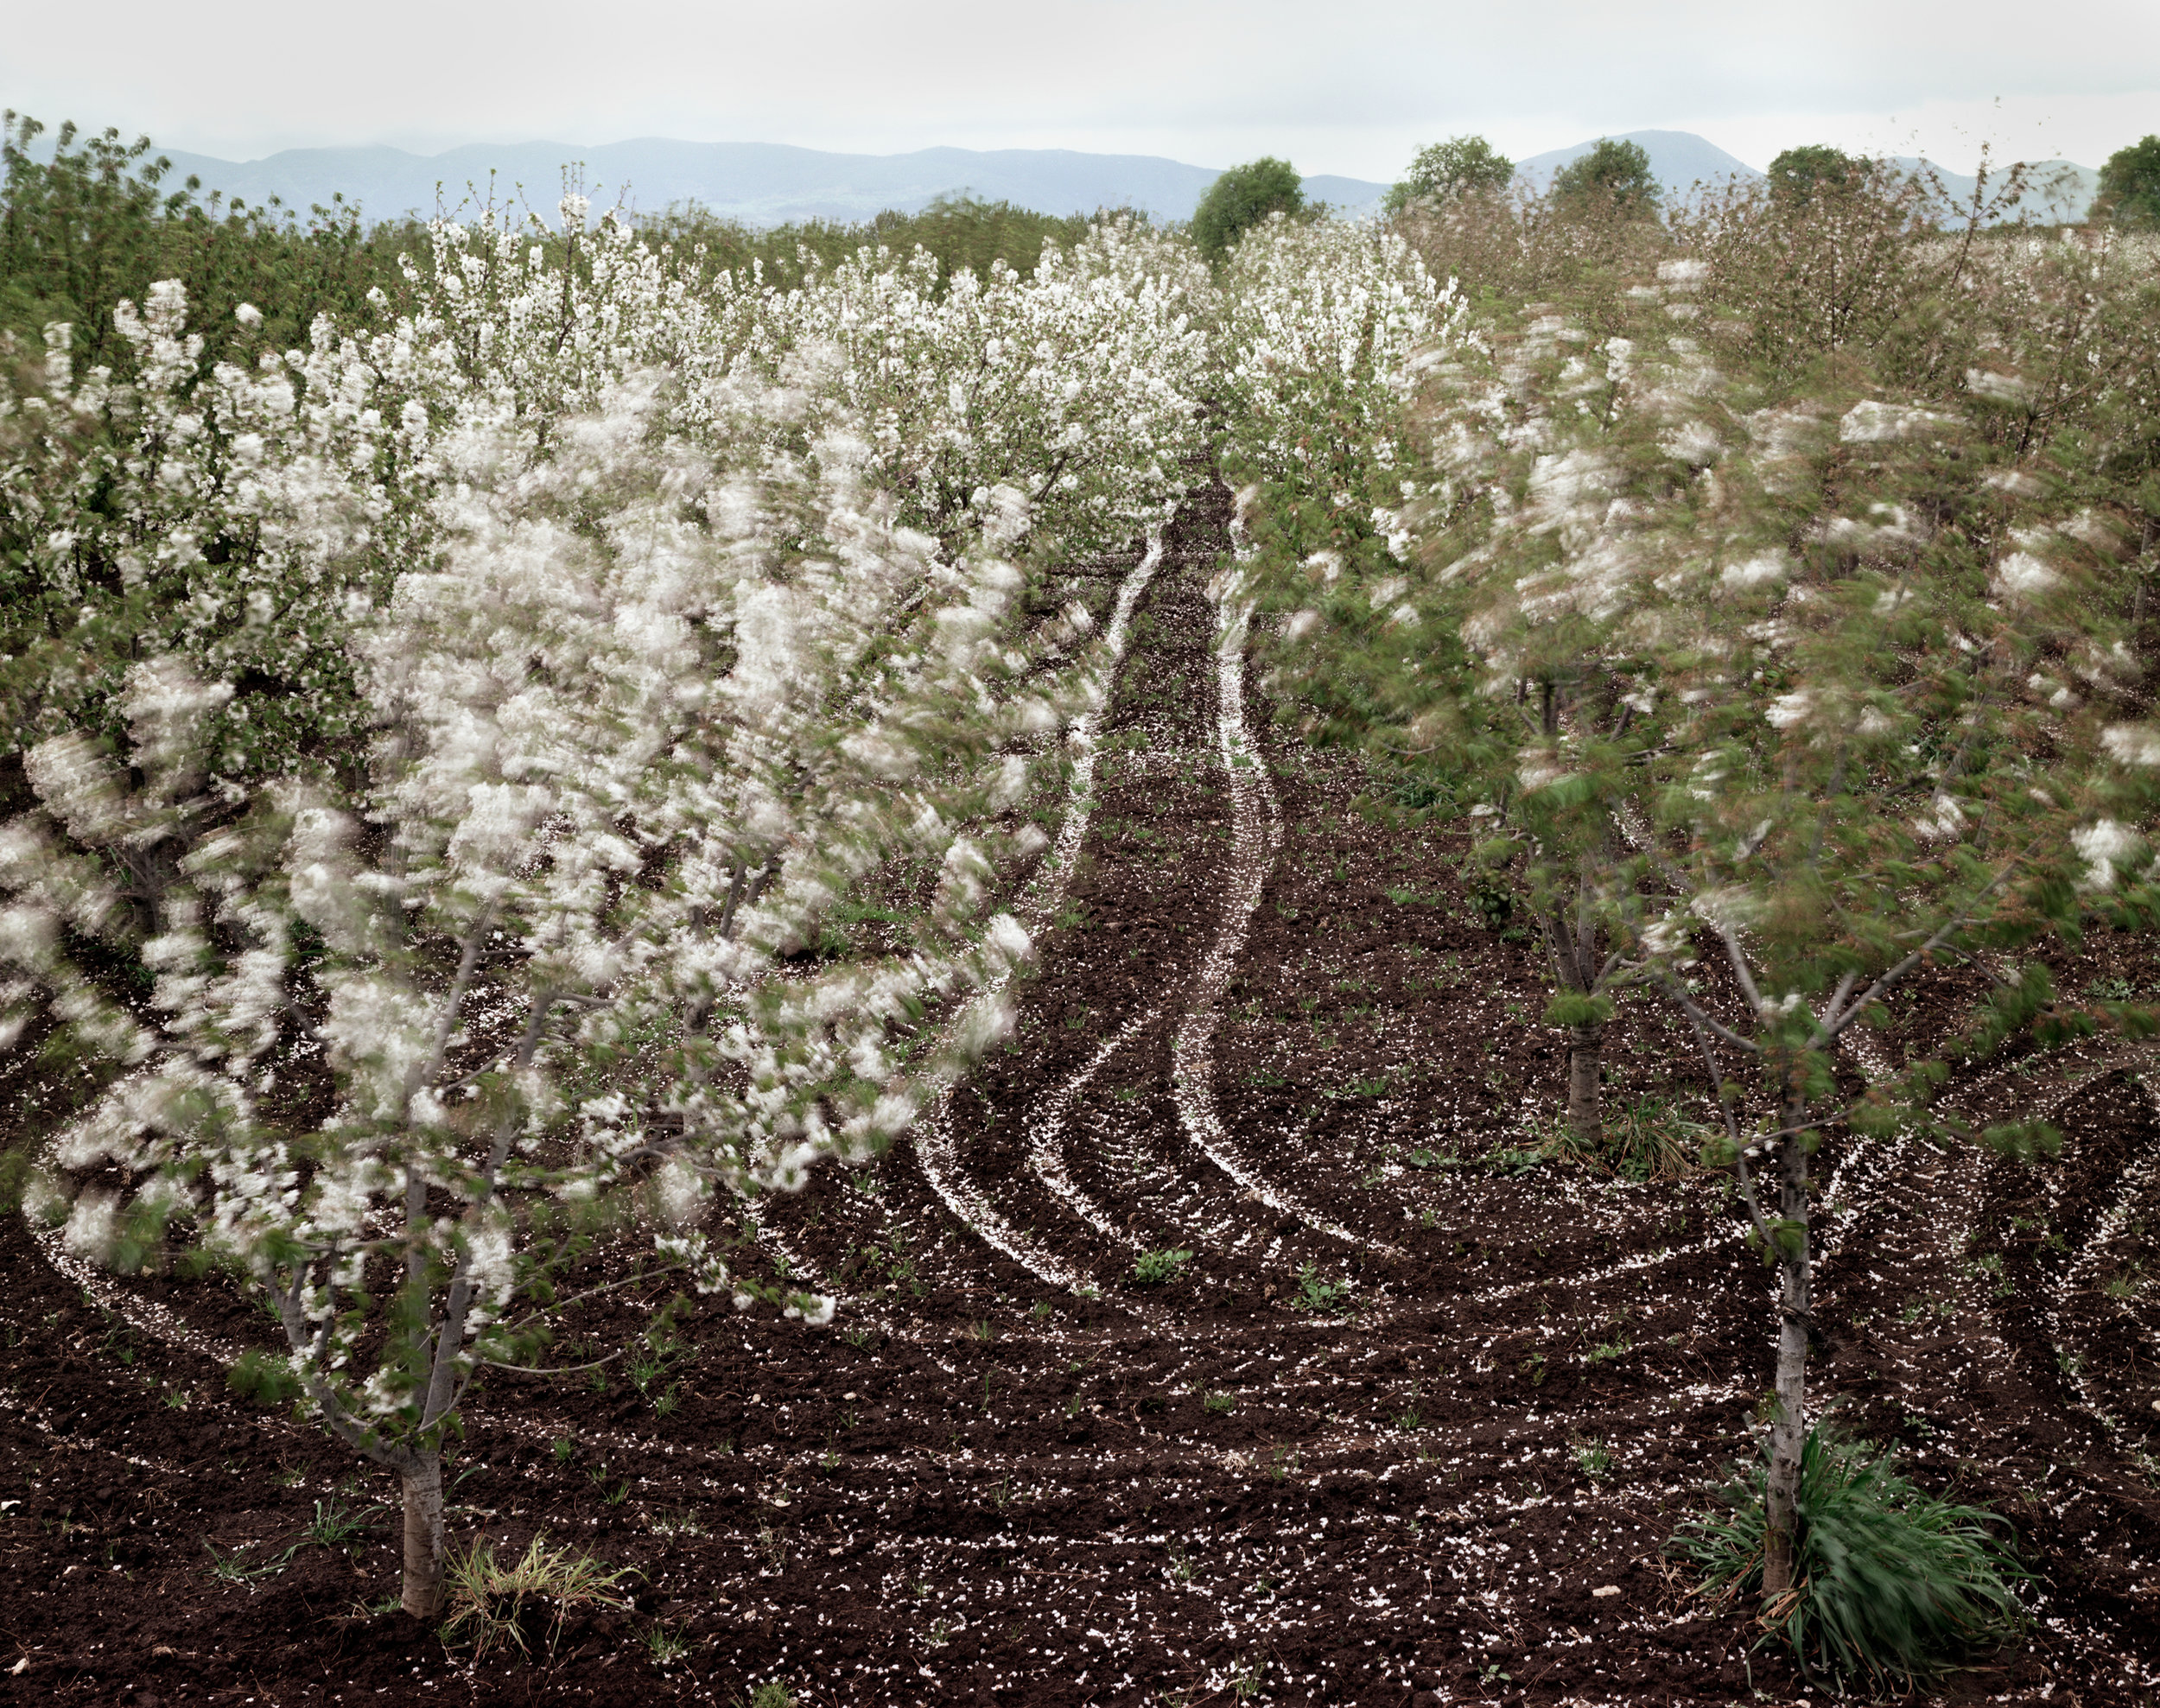 Cherry trees blooming, Sparanise, Italy, 1994